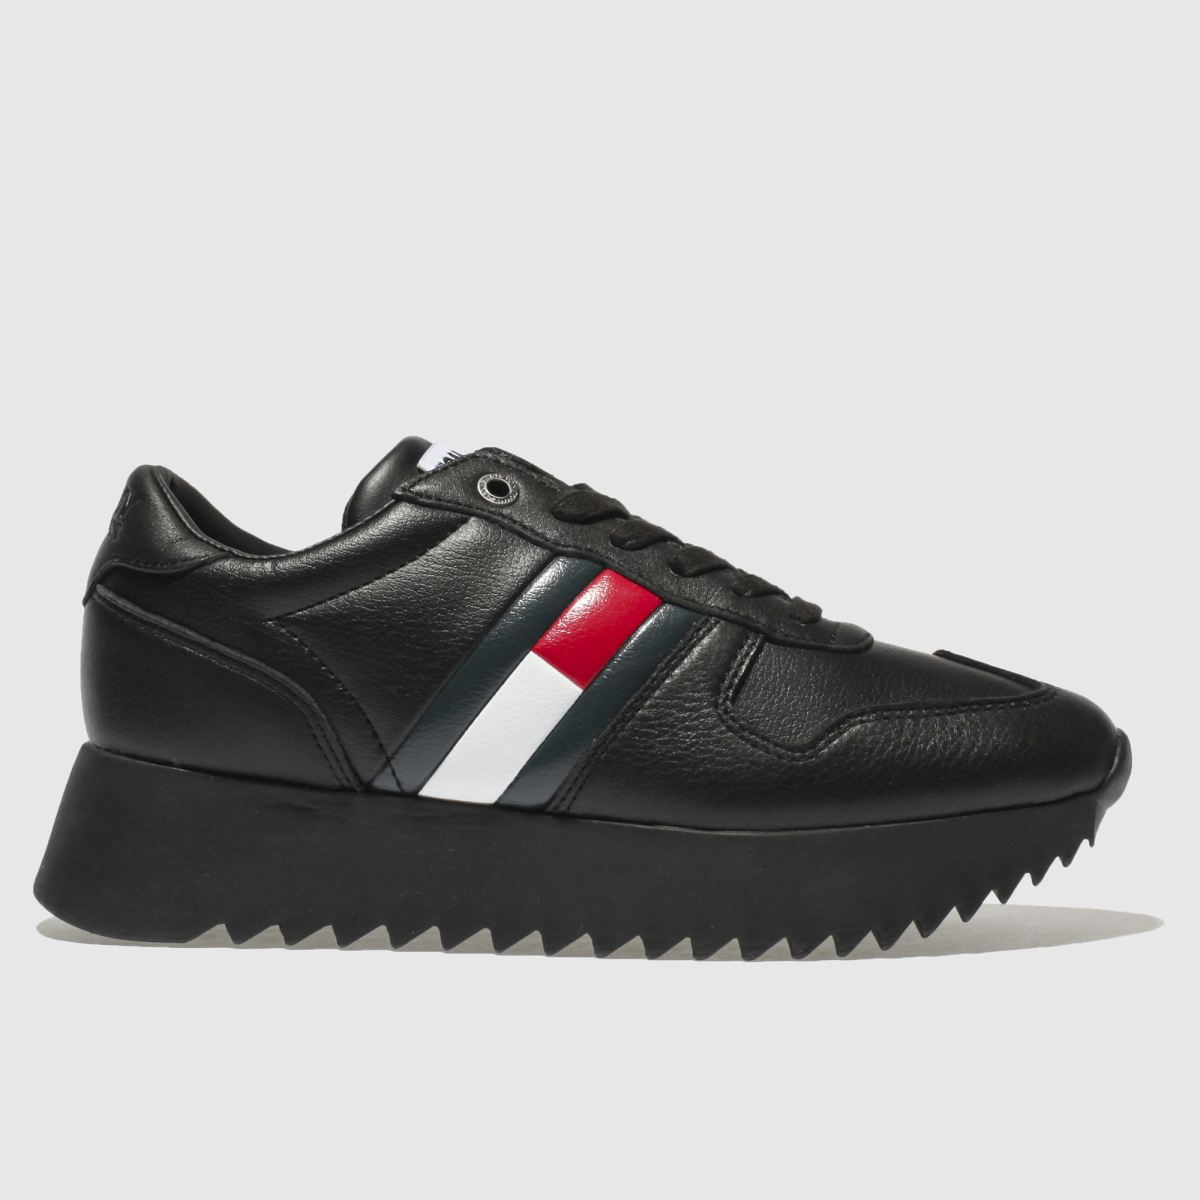 Tommy Hilfiger Tommy Hilfiger Black Tj High Cleated Sneaker Trainers